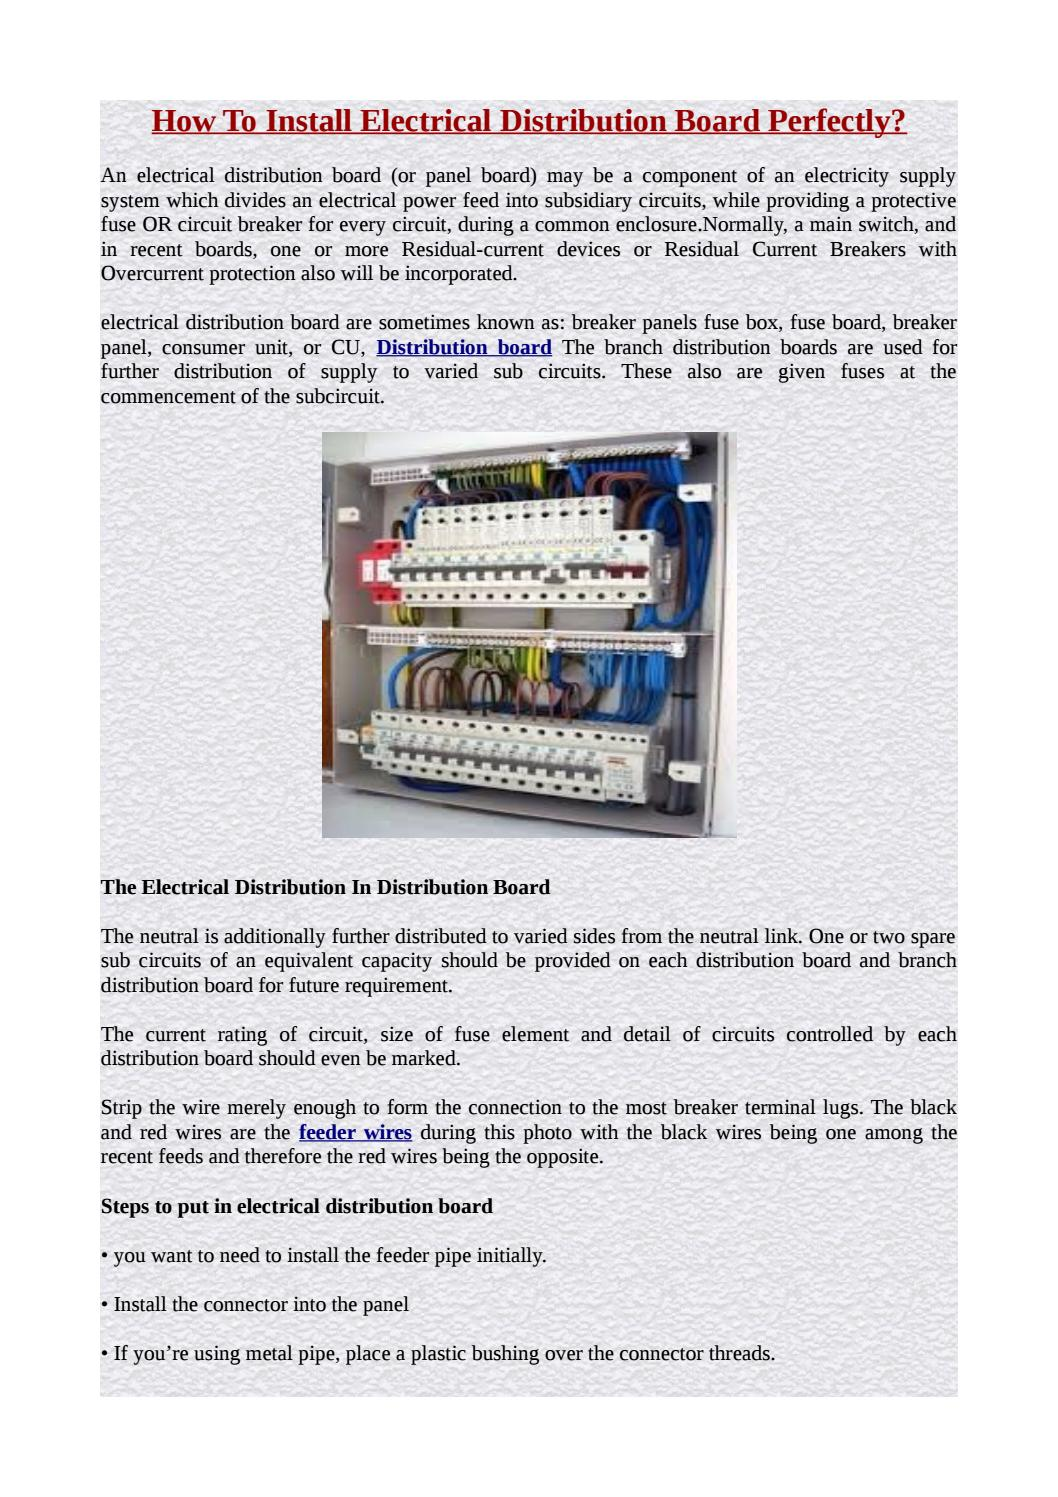 fuse distribution box main switch types of electrical panel boards by accupanel energy pvt ltd issuu  boards by accupanel energy pvt ltd